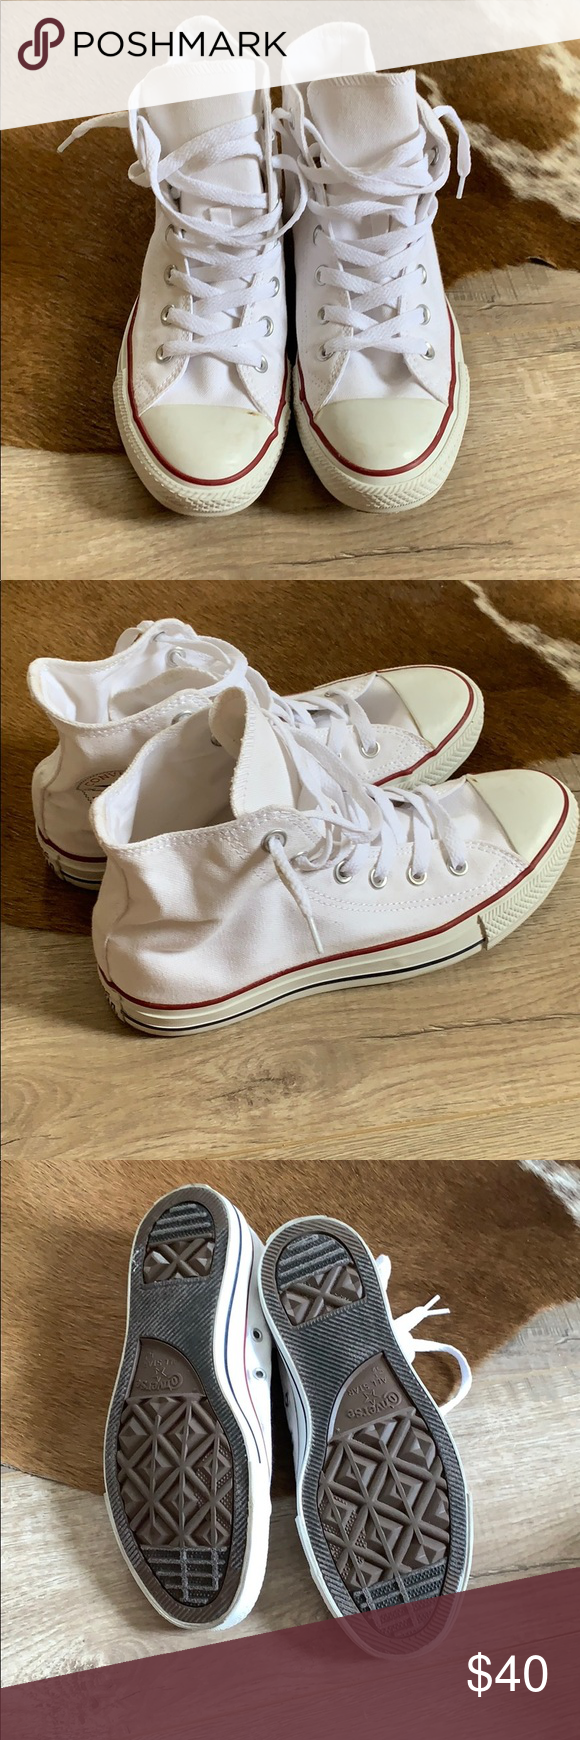 9e06fe90c54 High top converse Worn once for a photo shoot Women s 7.5 Converse Shoes  Sneakers